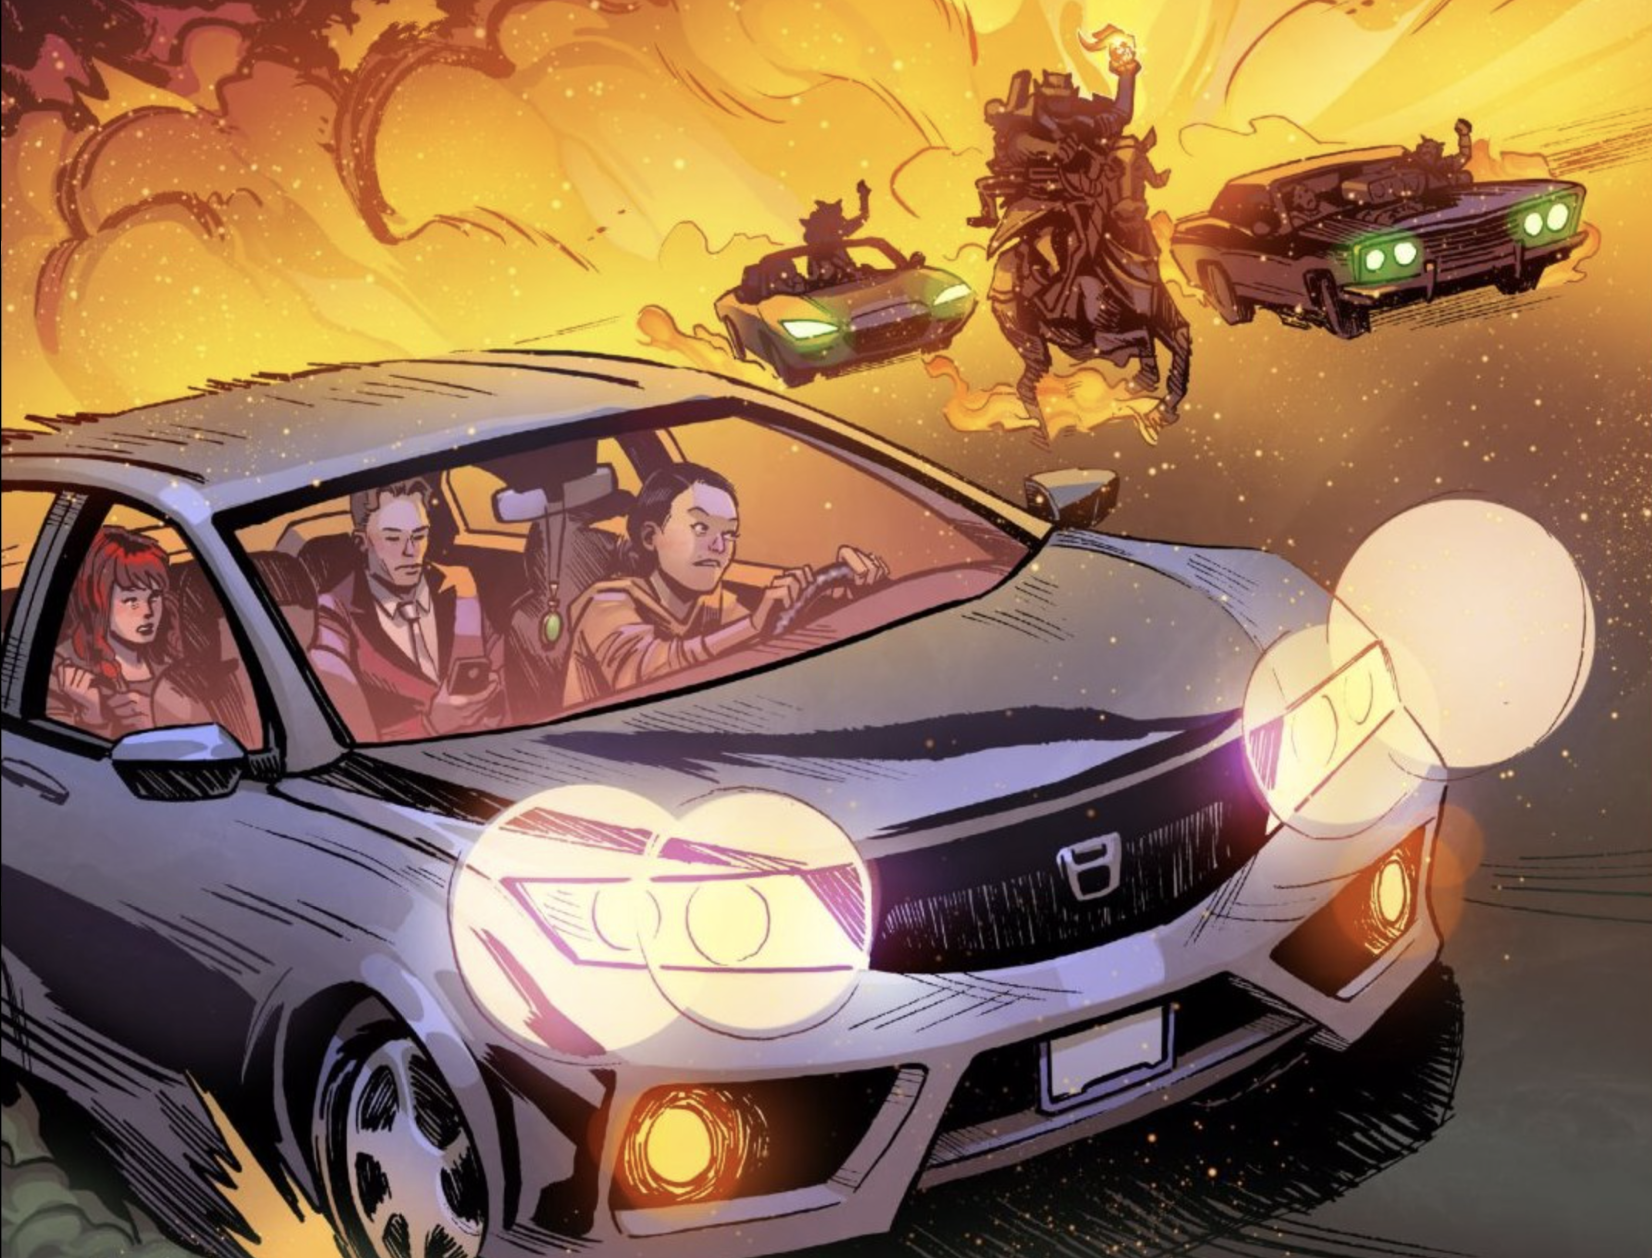 A car with three passengers driving away from demons in hard and horseback, with flames erupting behind.